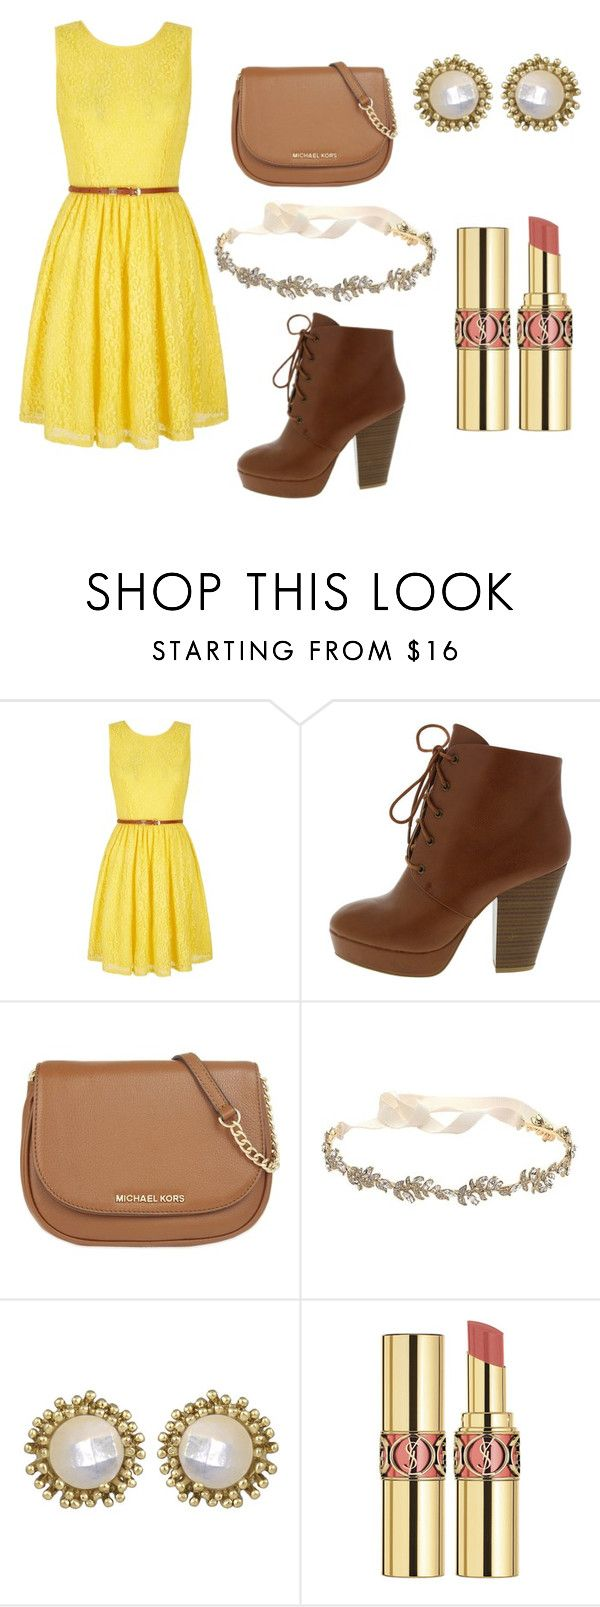 """""""Summer style """" by hersheysodapop ❤ liked on Polyvore featuring Yumi, MICHAEL Michael Kors, Marchesa, Kendra Scott and Yves Saint Laurent"""